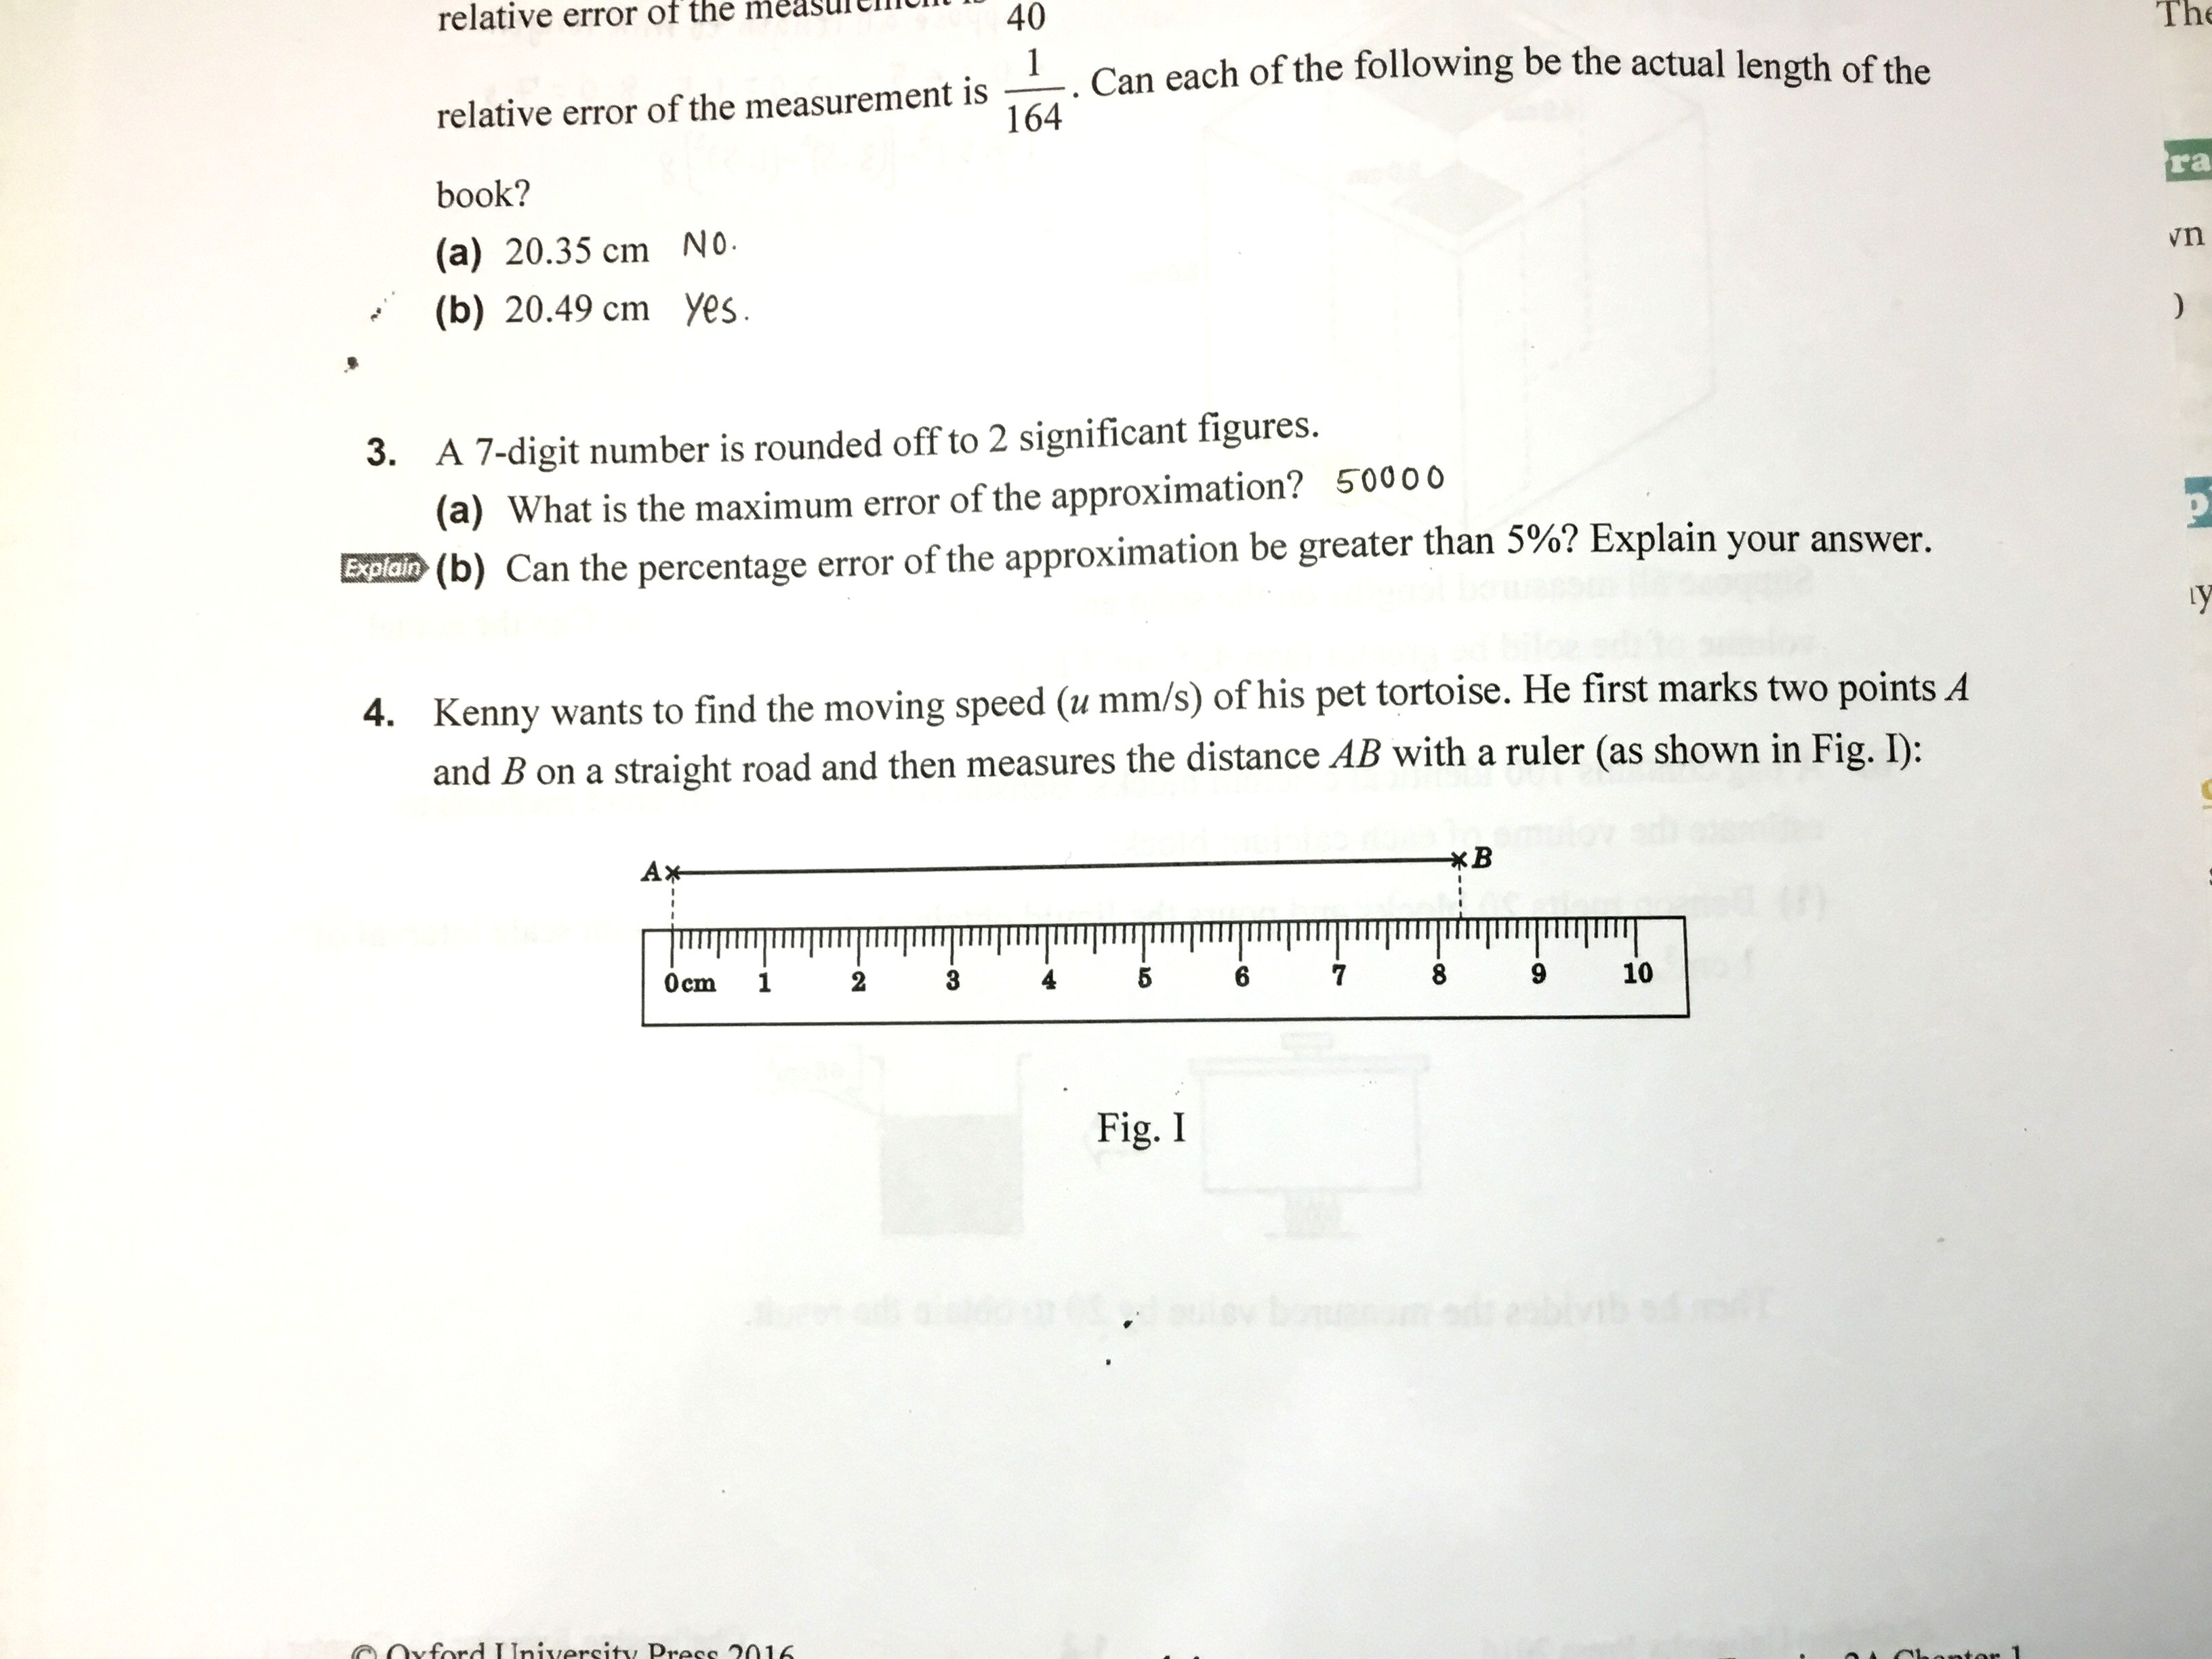 Pls Help Me With Question 3 And 4 They Are Challenging Questions